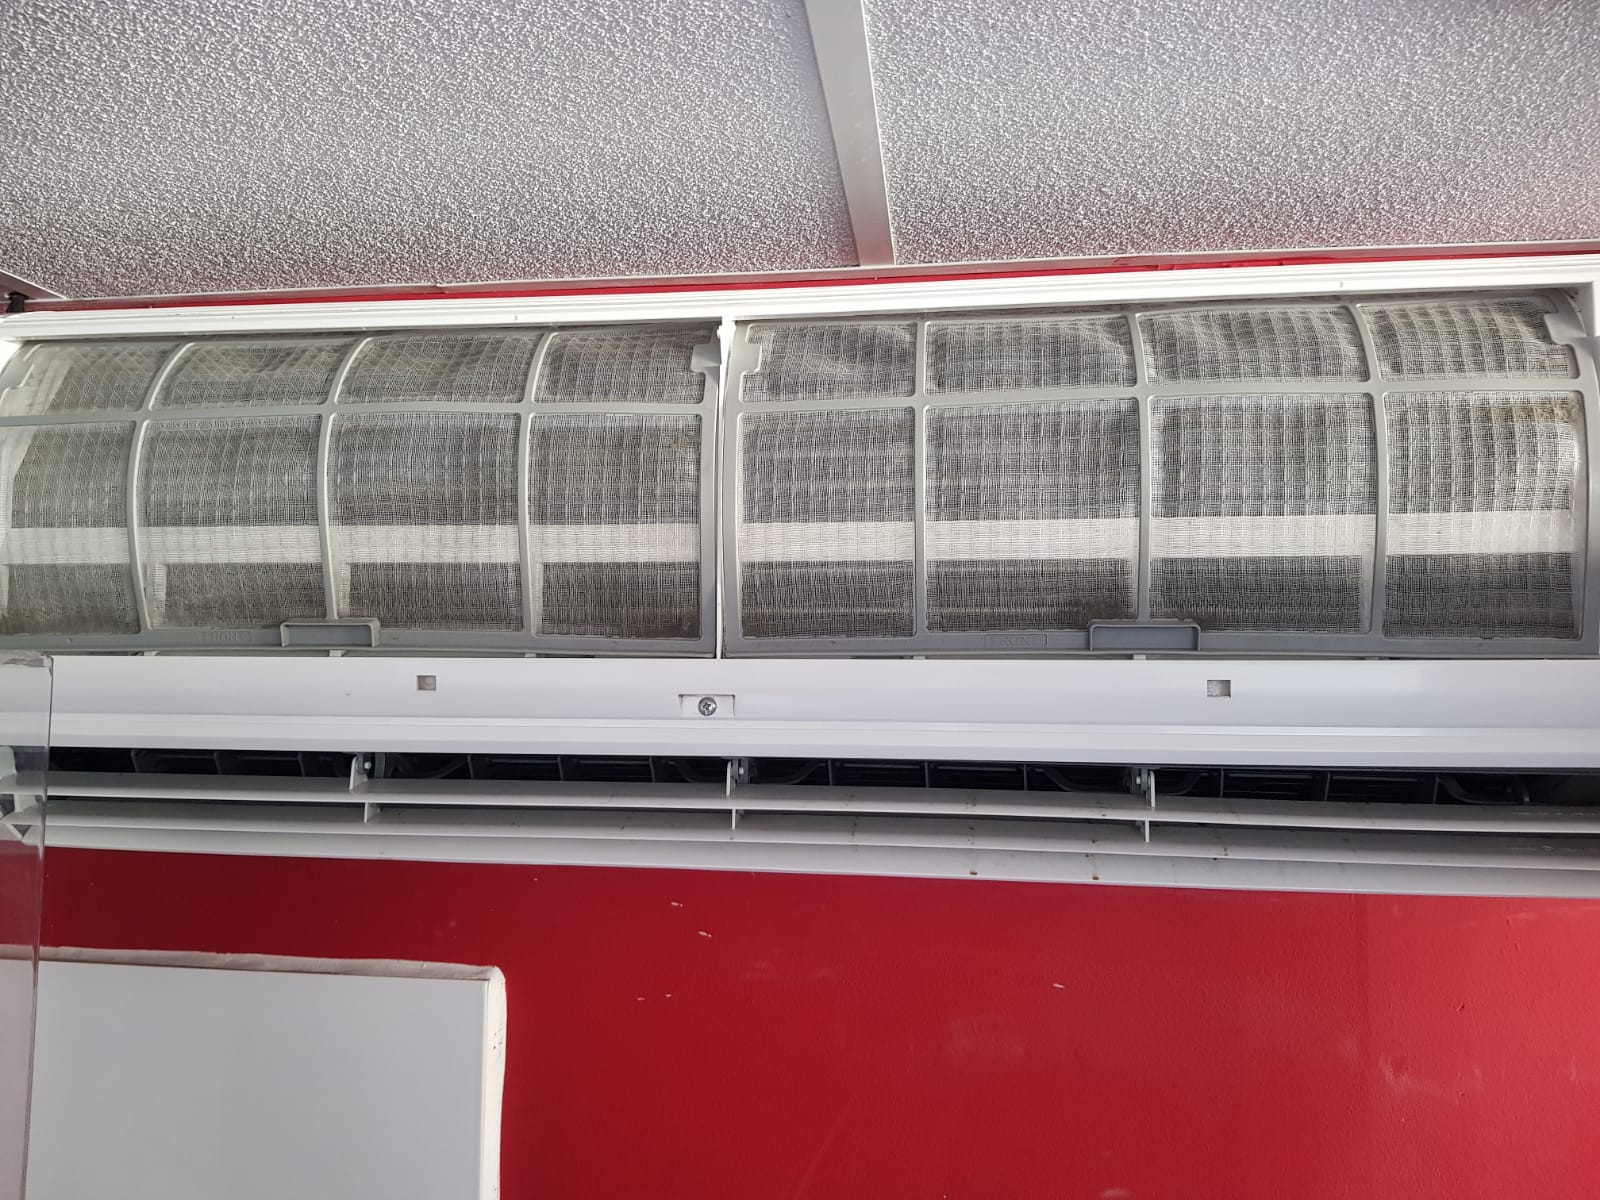 AAC Blogs - Are Air Conditioning Filters Recyclable?